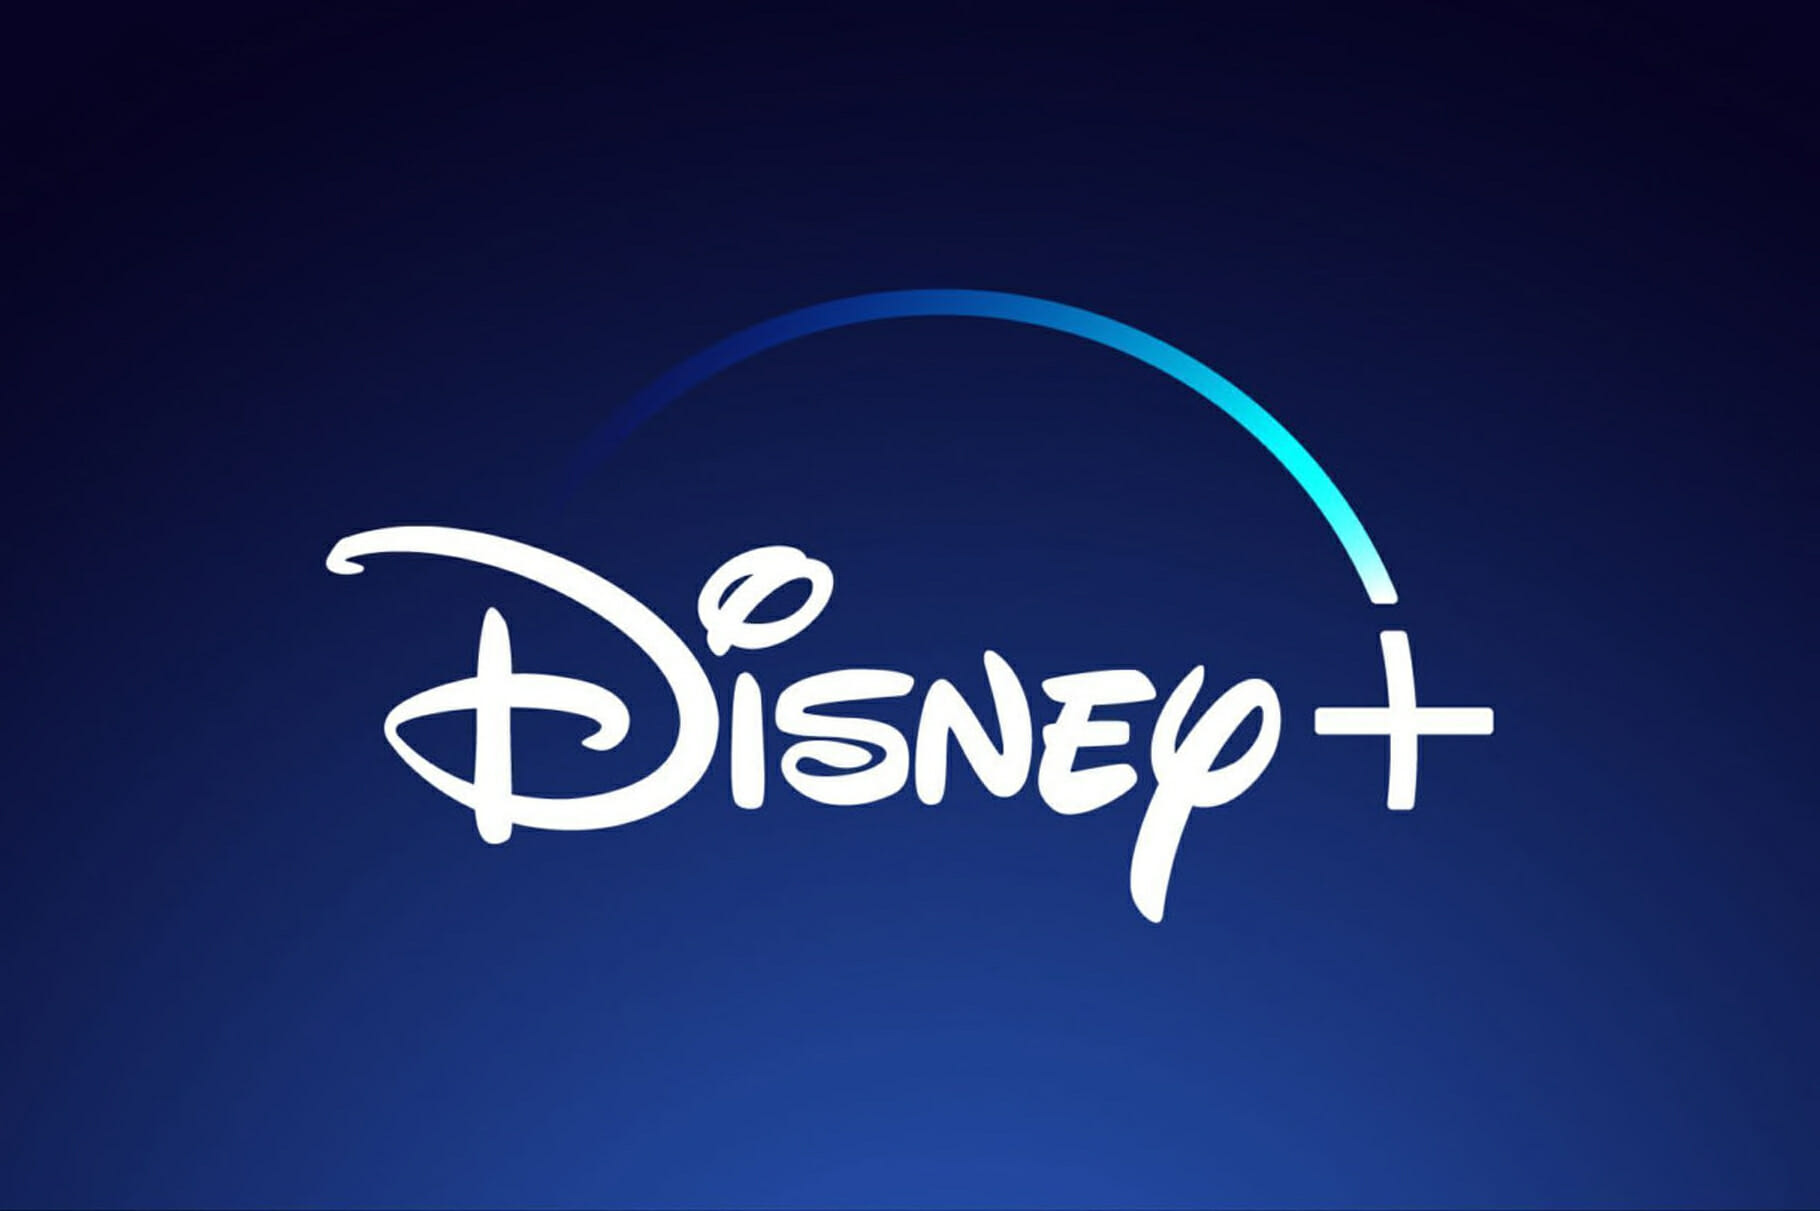 Disney+ to Be the Go-To Location for Original Content in the Future